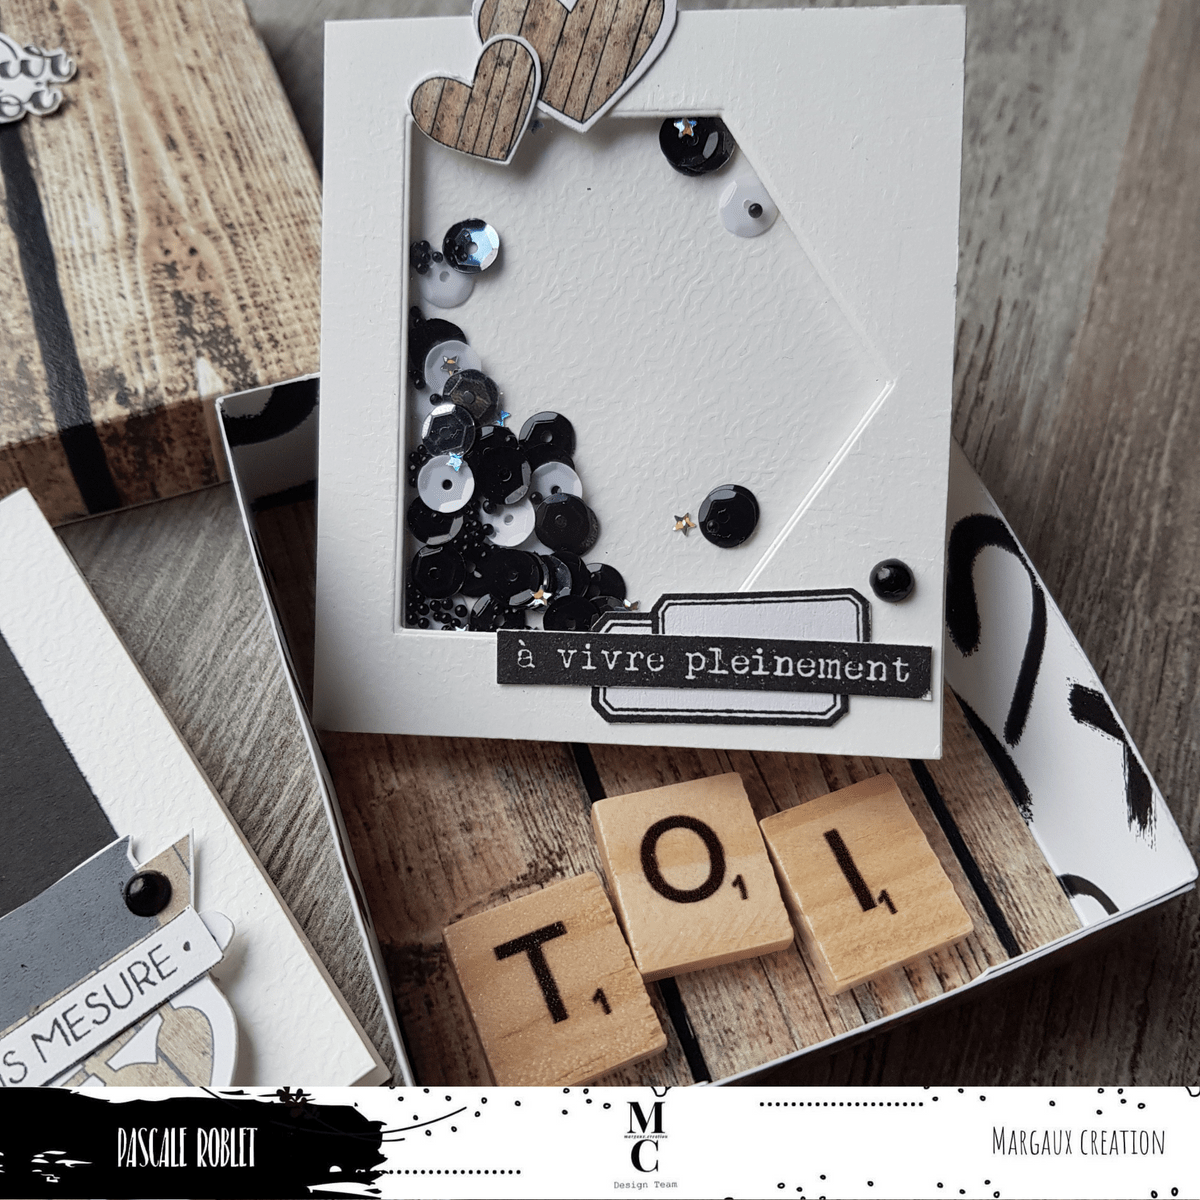 margaux creation scrapbooking - DT Pascale Roblet Carterie